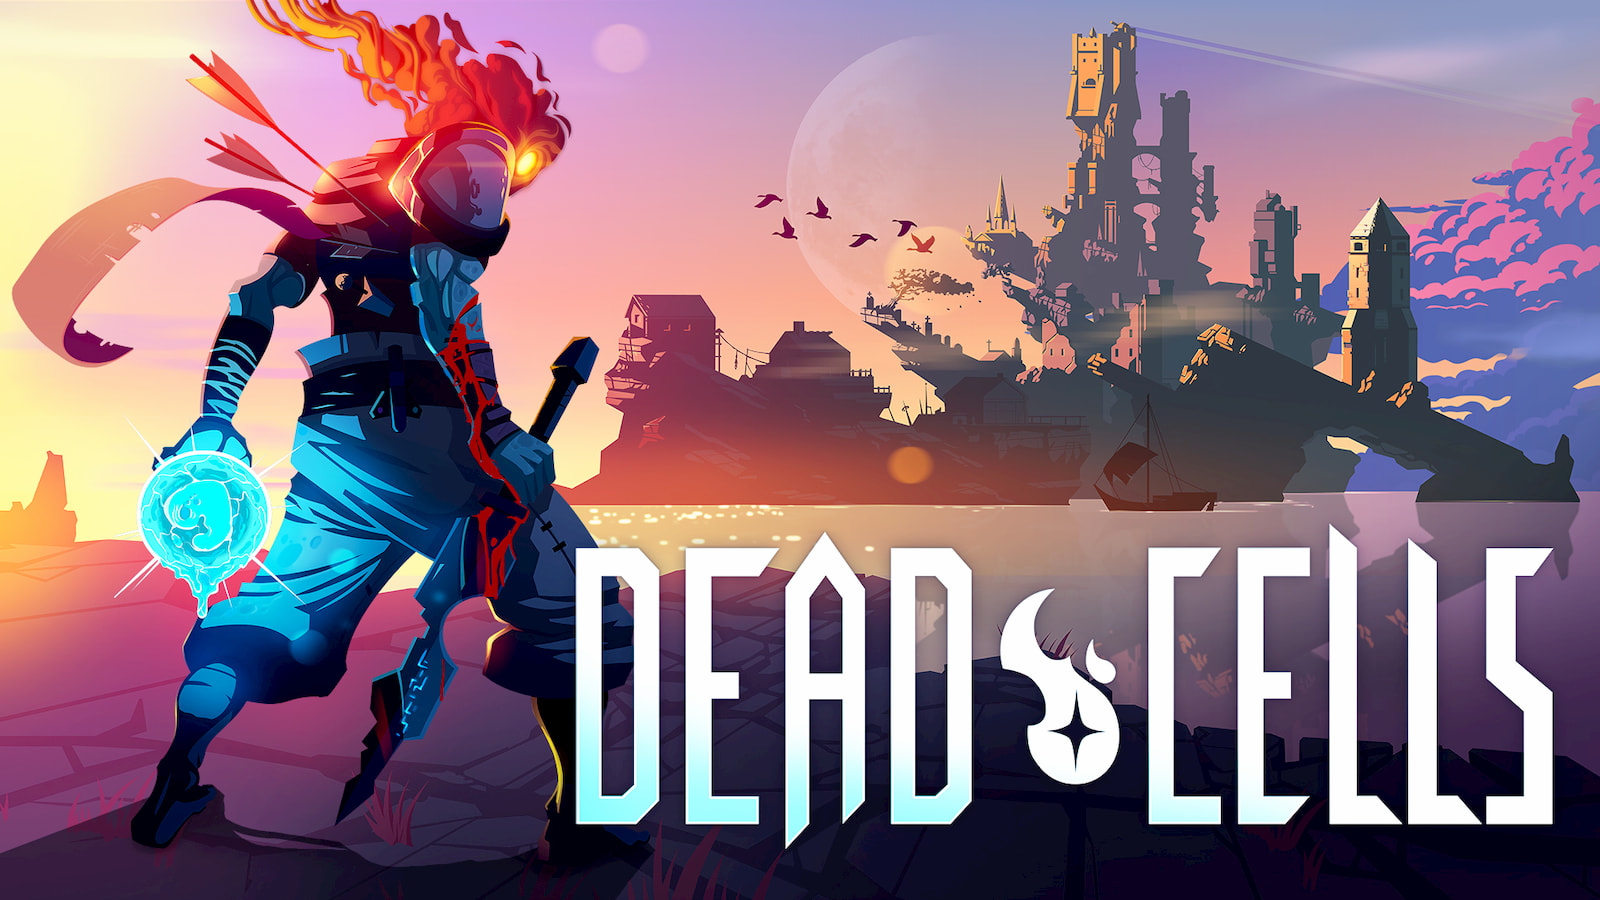 Chromebook Perks: Grab the hit game Dead Cells for free